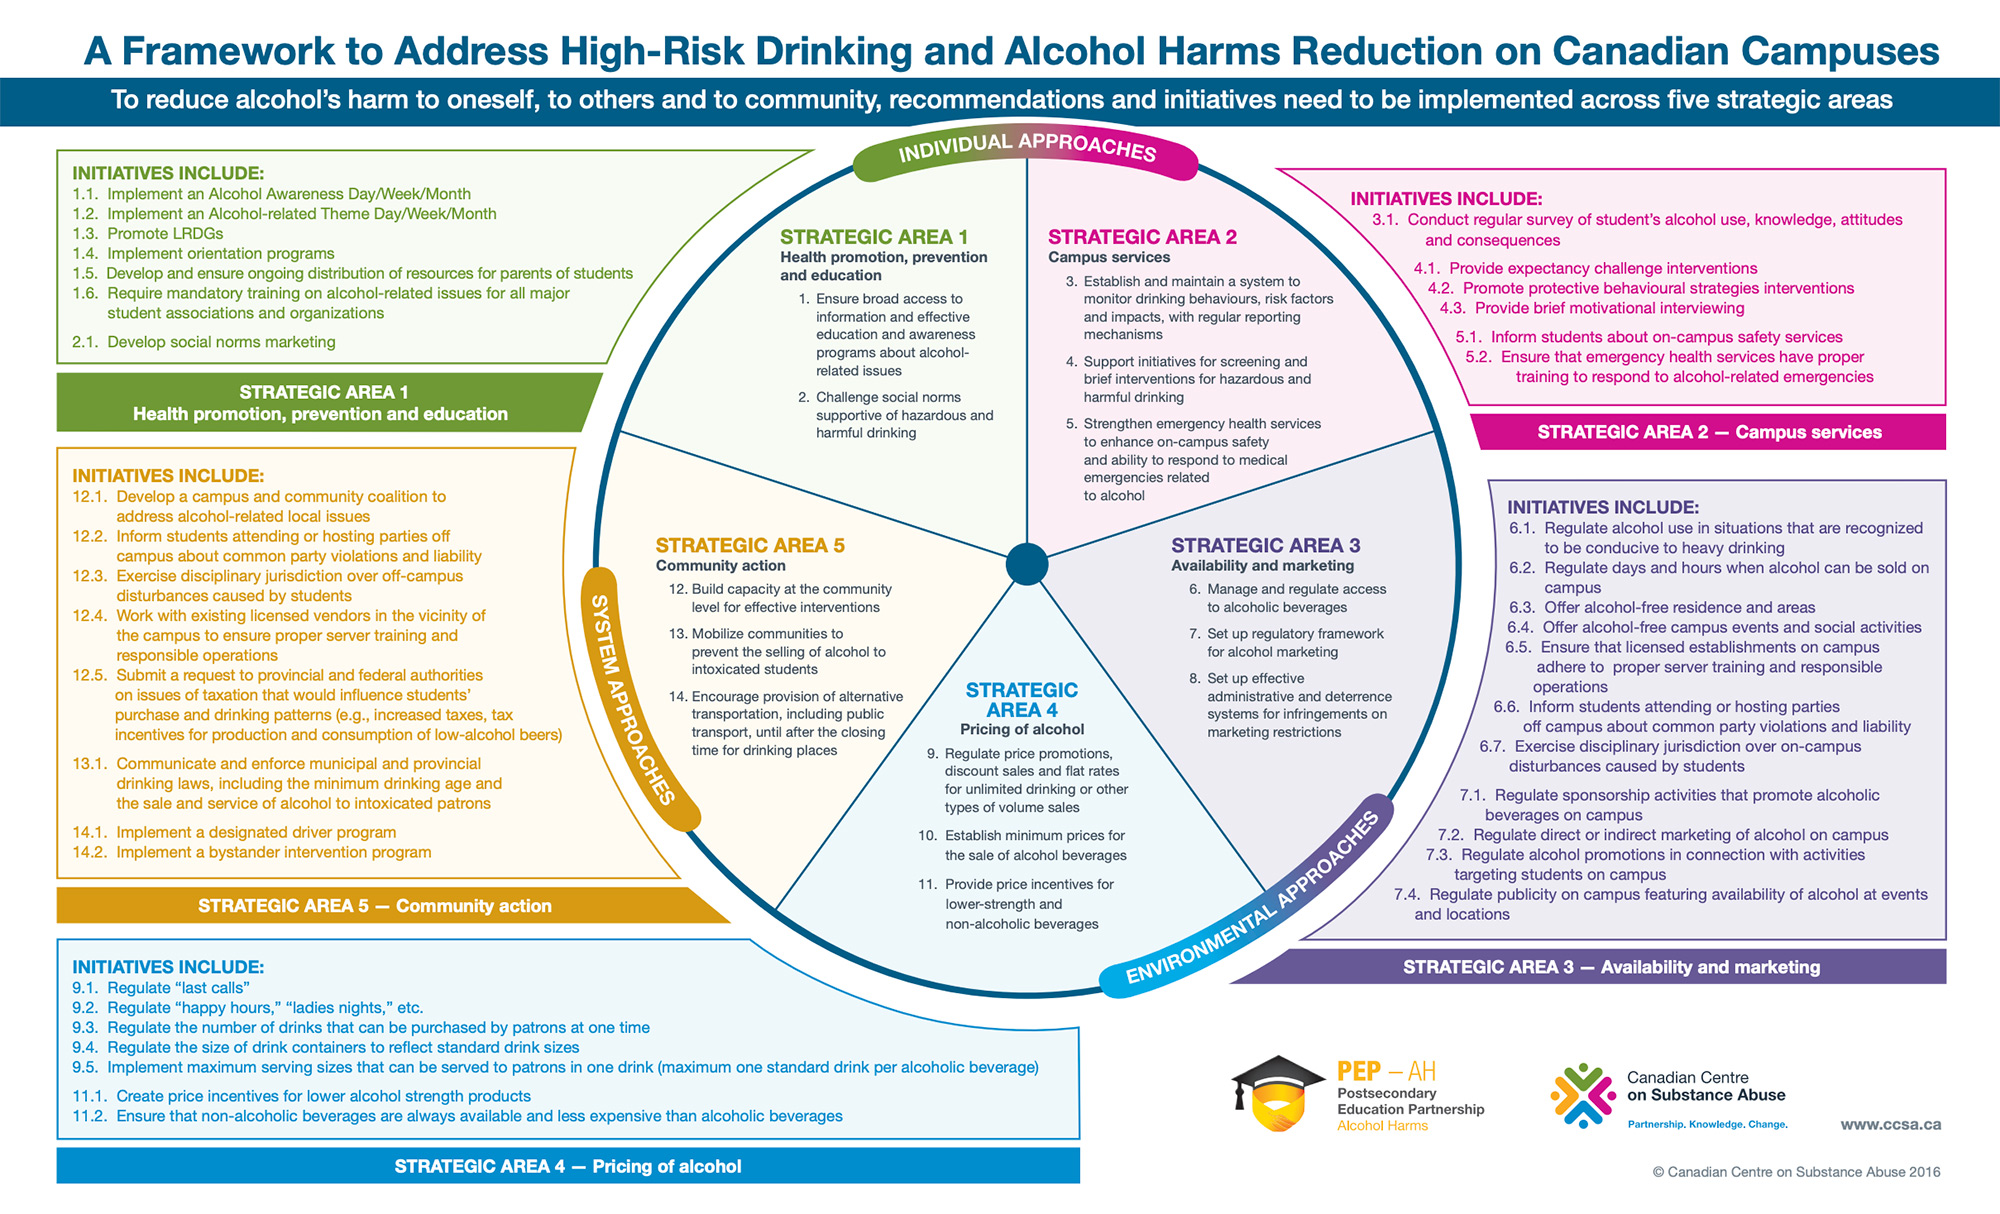 The framework gives high-level advice across five strategic areas : Health promotion, prevention and education, Campus services , Availability and marketing, Pricing of alcohol , Community action.